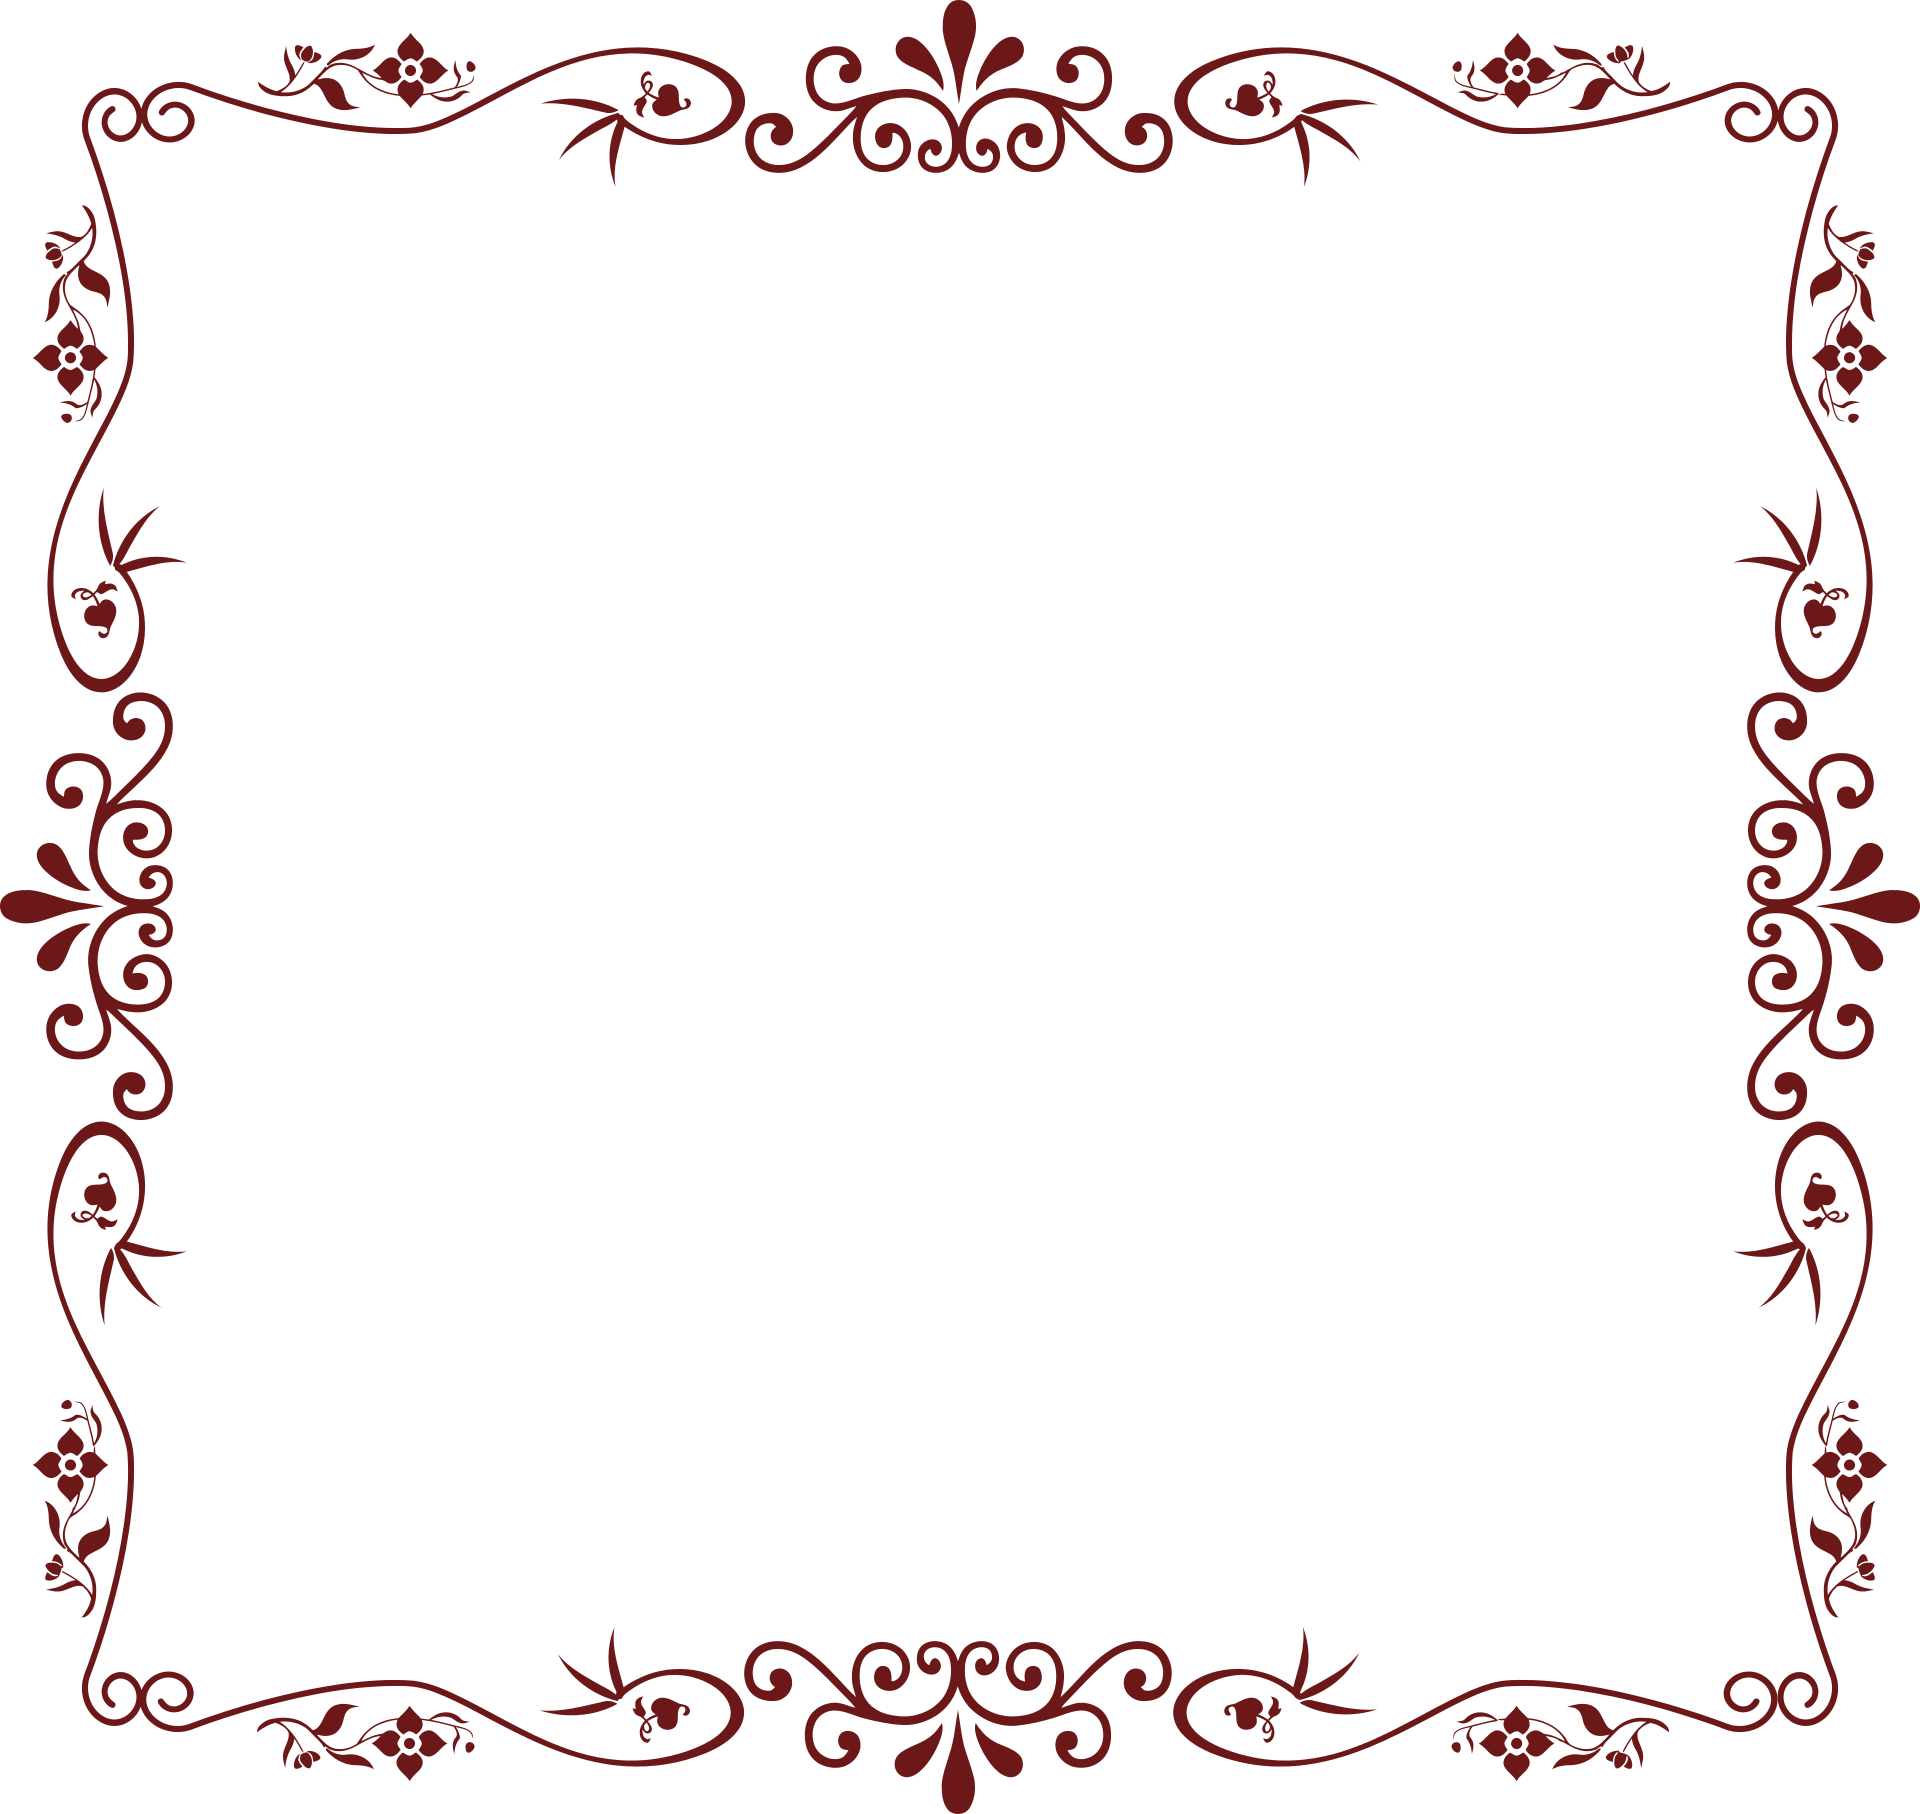 Border pic arts. Photo borders png clip art black and white download